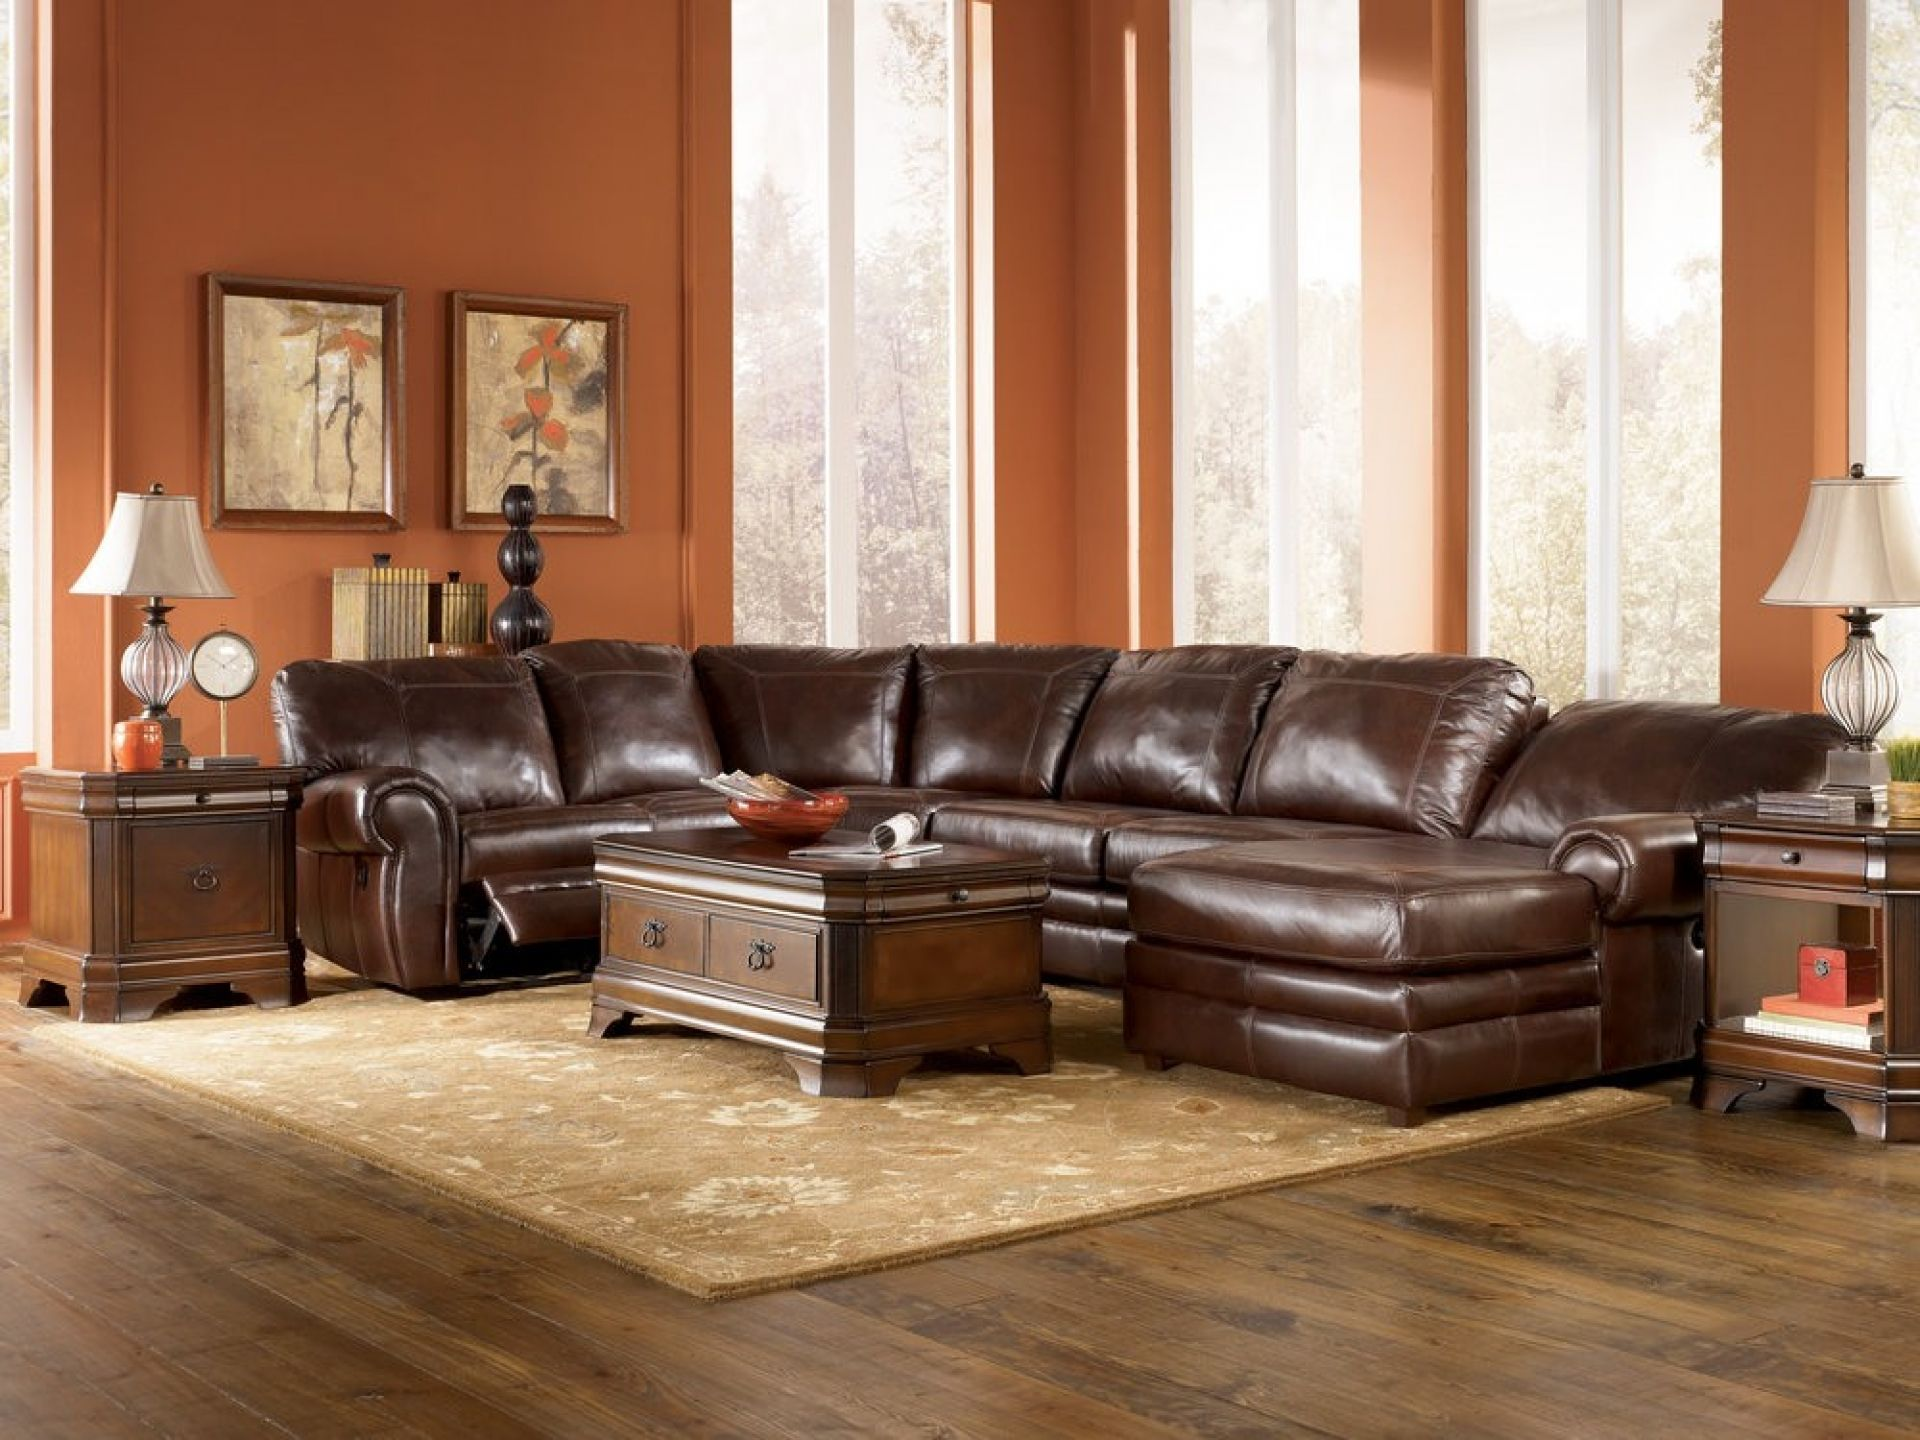 Elegant Modern Genuine Leather Recliner Sectional Sofa With Couch